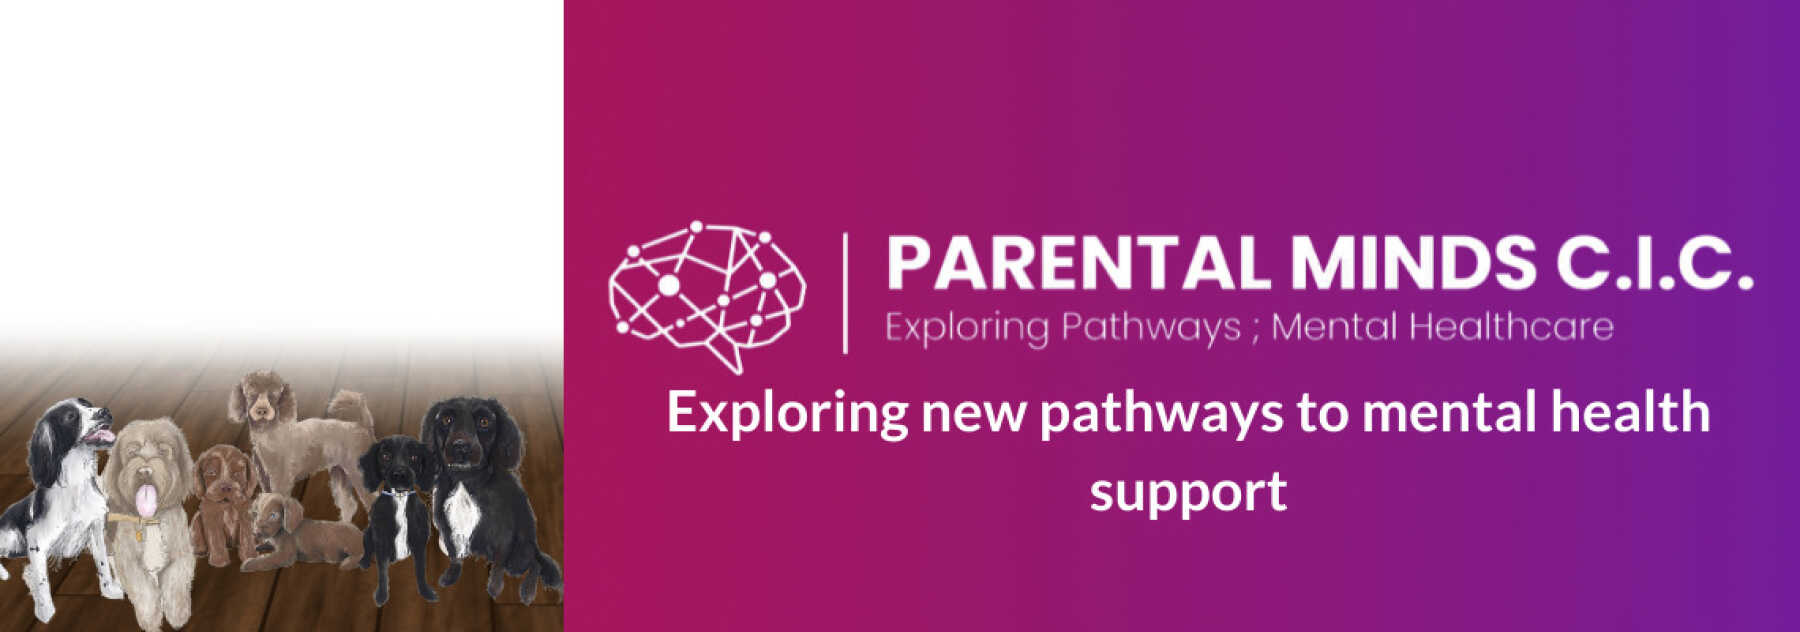 Featured Image for Parental Minds CIC